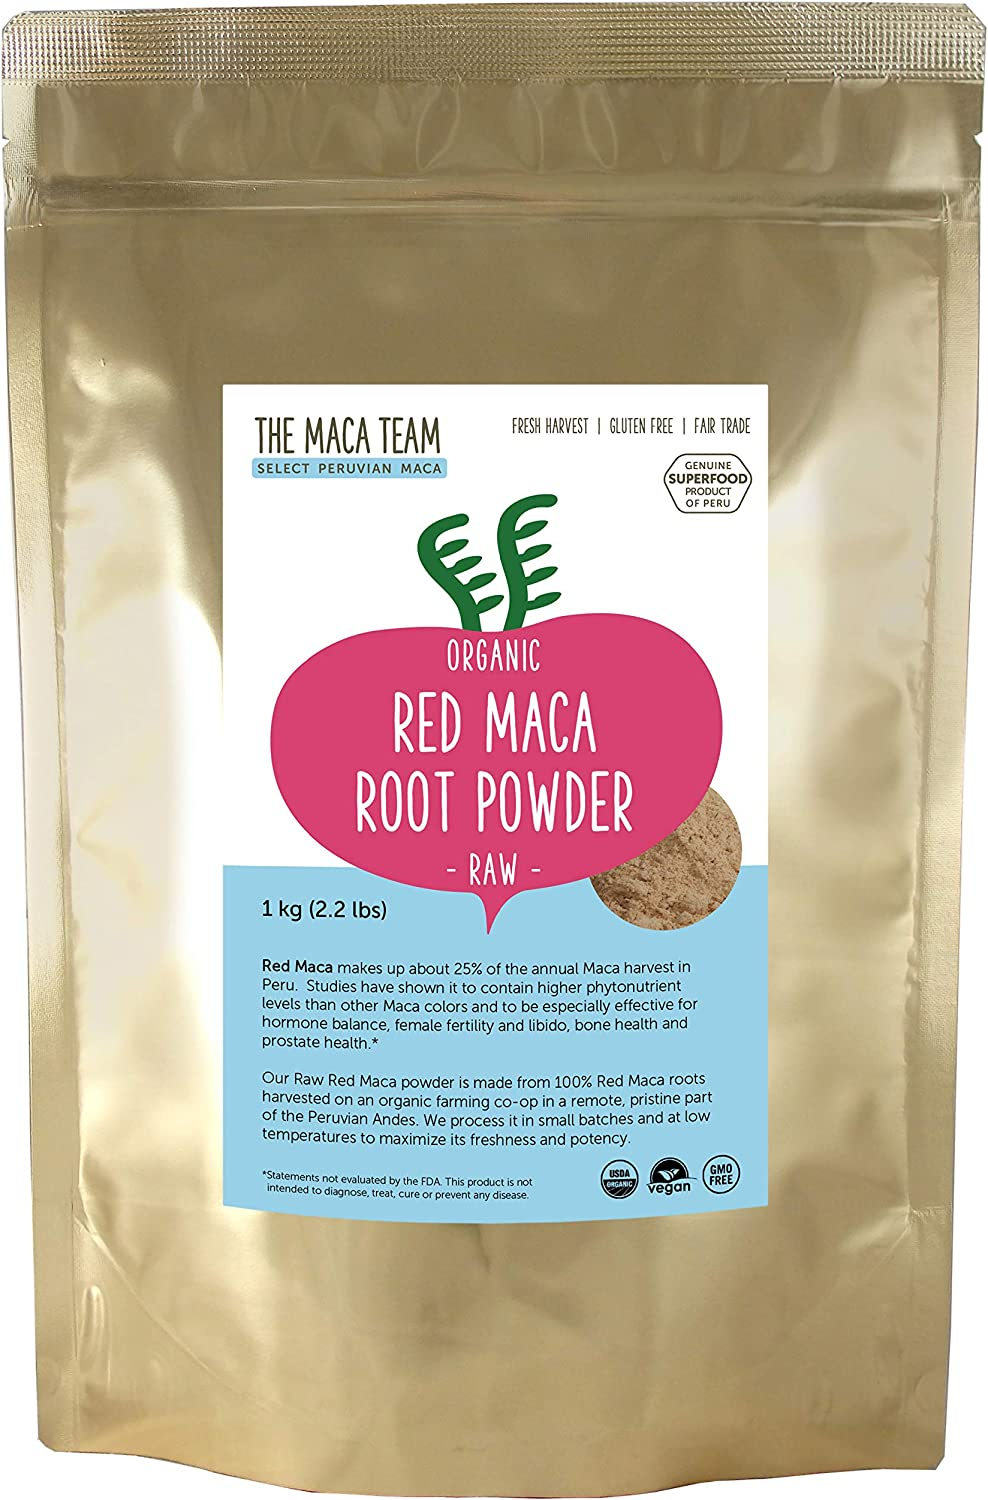 The Maca Team Raw Red Maca Powder, Fair-Trade, GMO-Free Maca from Peru, 2.2 Pounds, 111 Servings